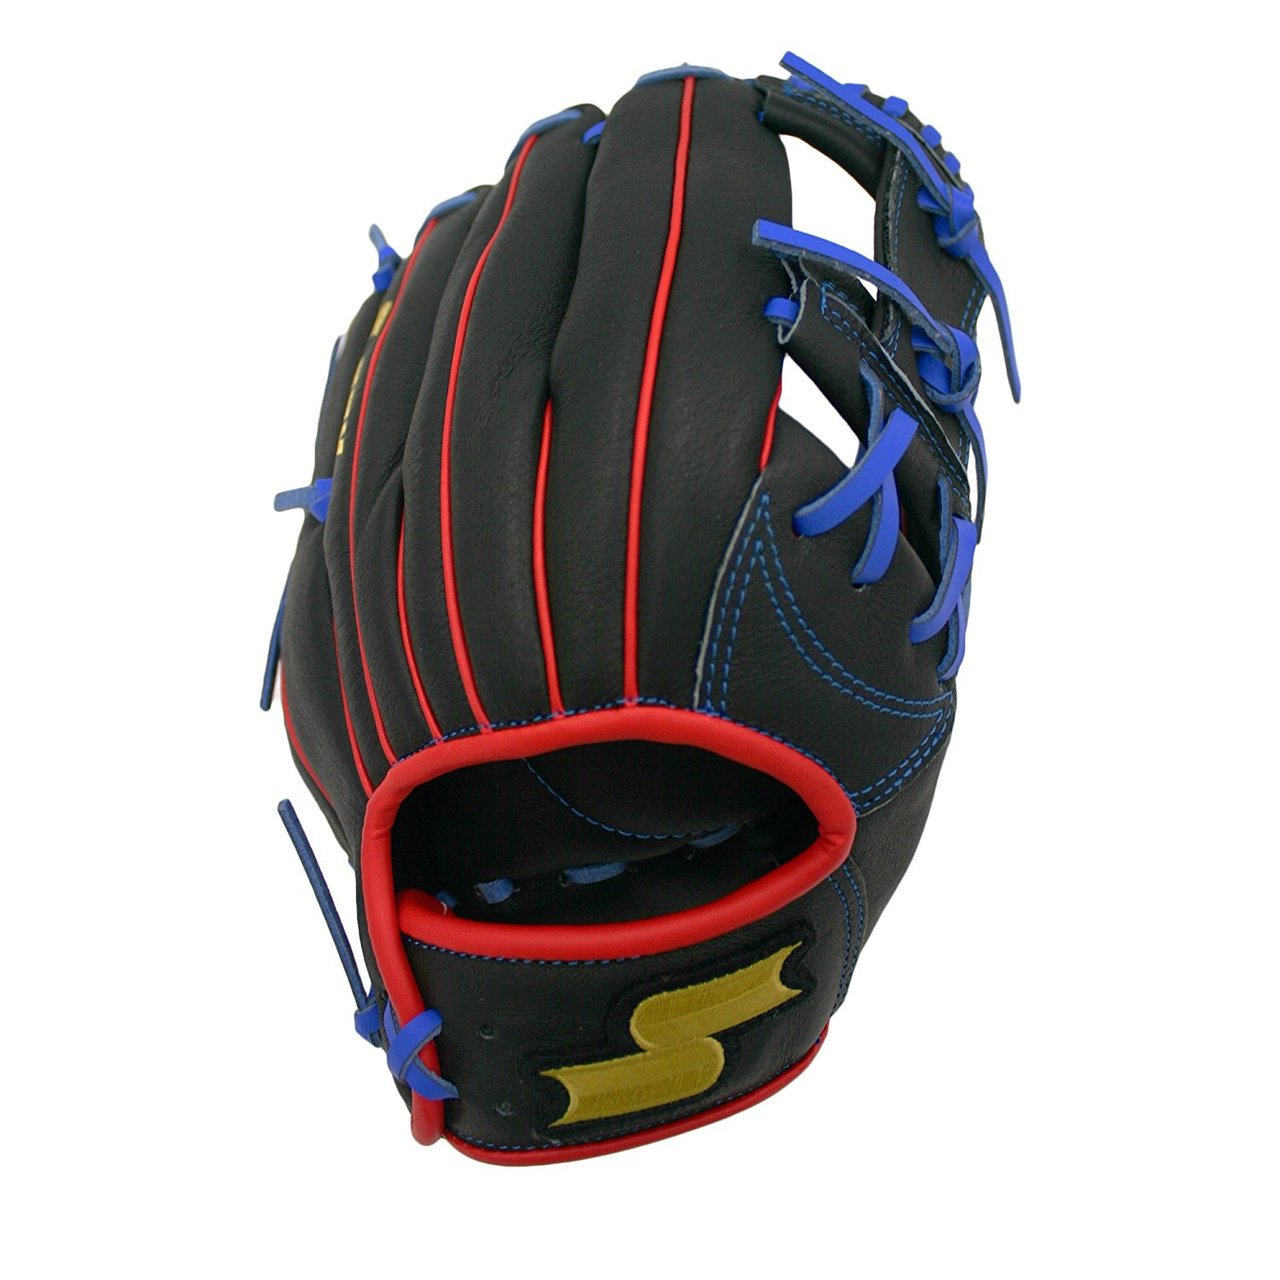 ssk-javy-baez-youth-baseball-glove-11-5-jb9-series-right-hand-throw S18JBOD-RightHandThrow  083351452001 Inspired by the game day glove of Javier Baez Features ssk